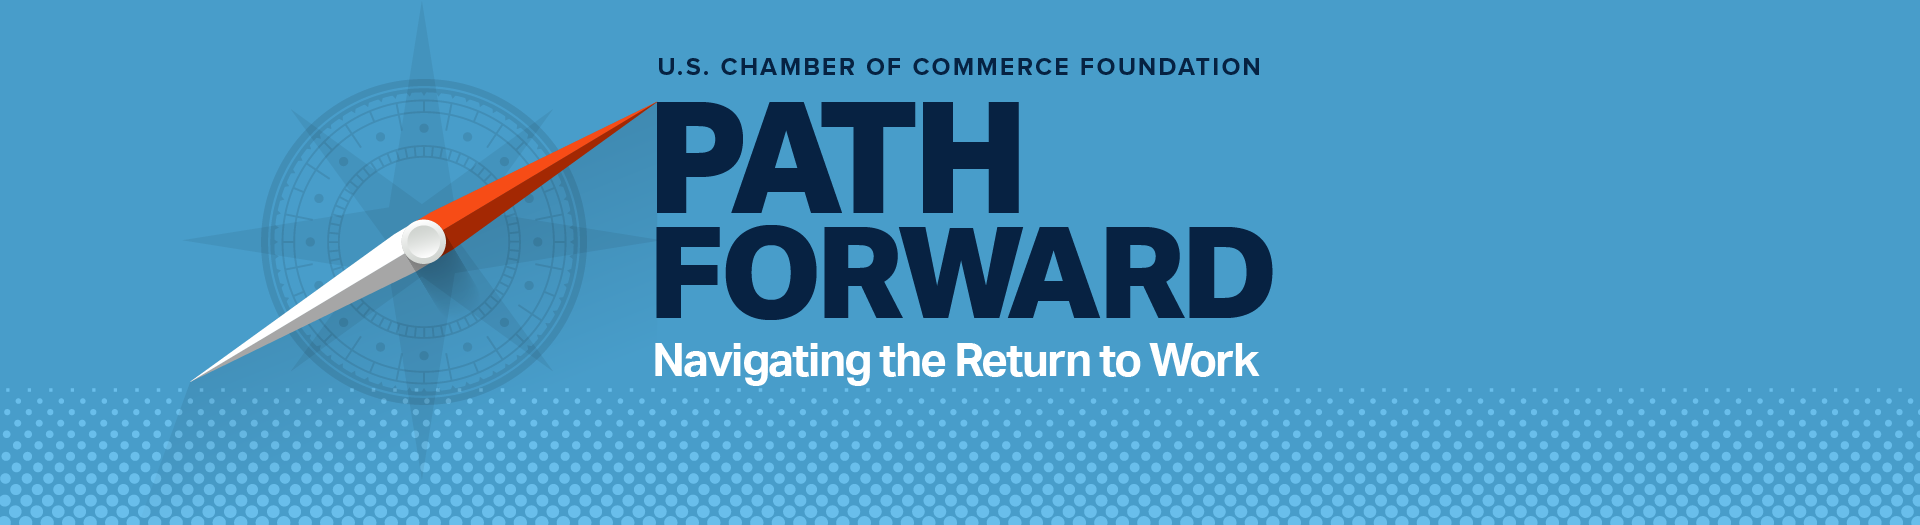 path-forward-banner.png